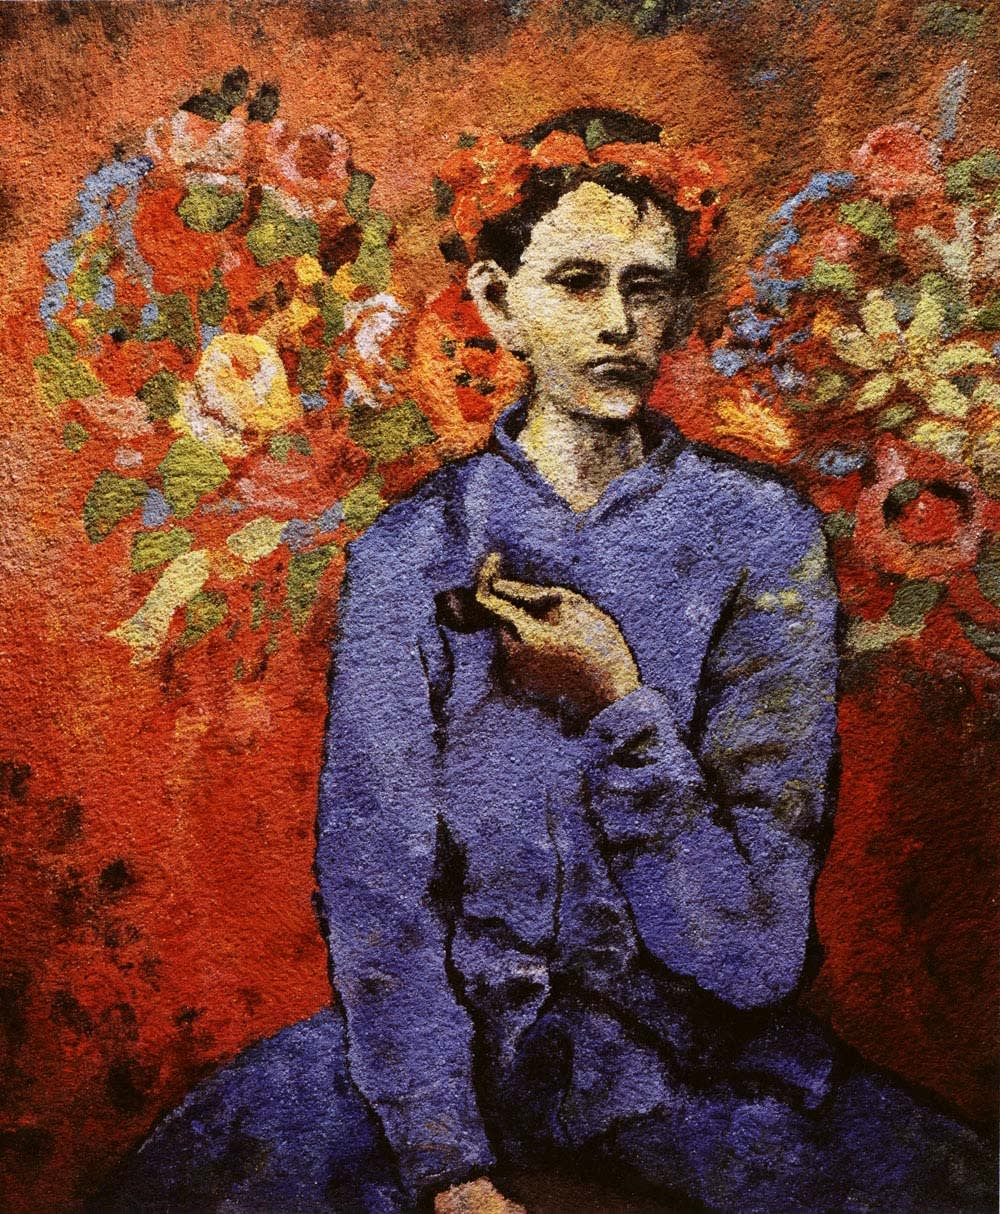 Vik Muniz Boy with Pipe after Picasso picture of pigment imitating Picasso painting of boy with pipe